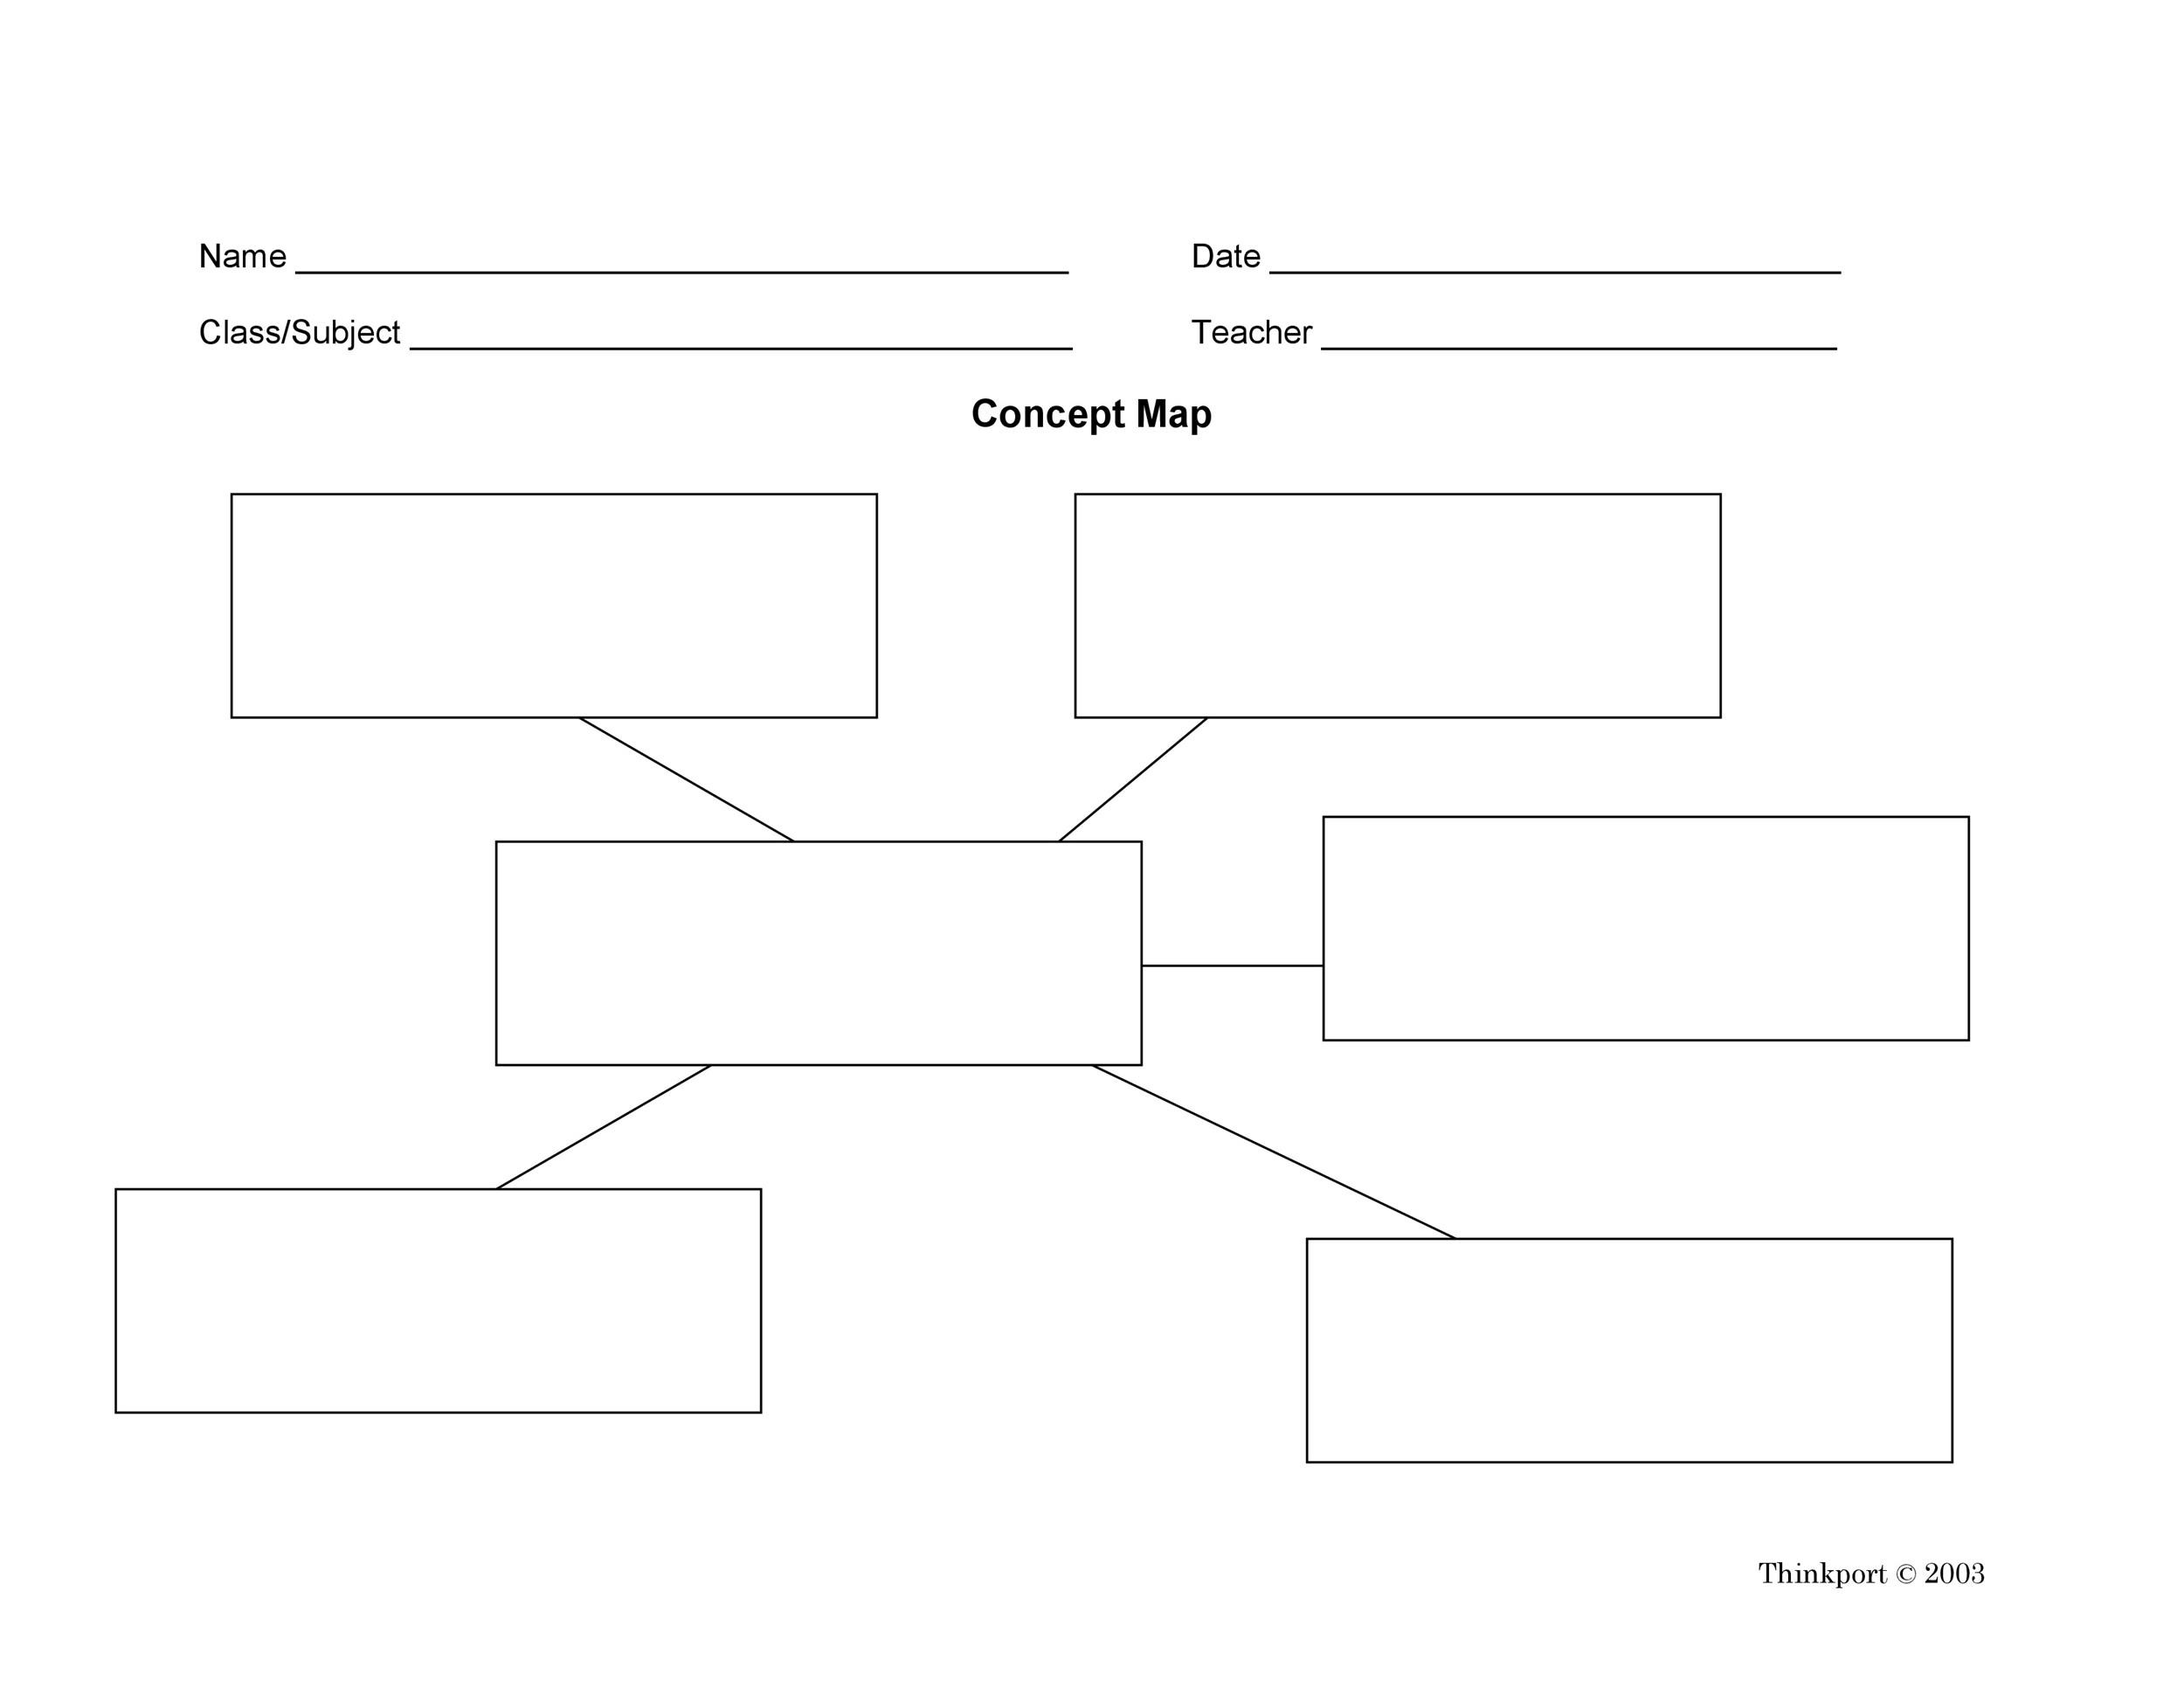 Avid Vocabulary Concept Map.40 Concept Map Templates Hierarchical Spider Flowchart